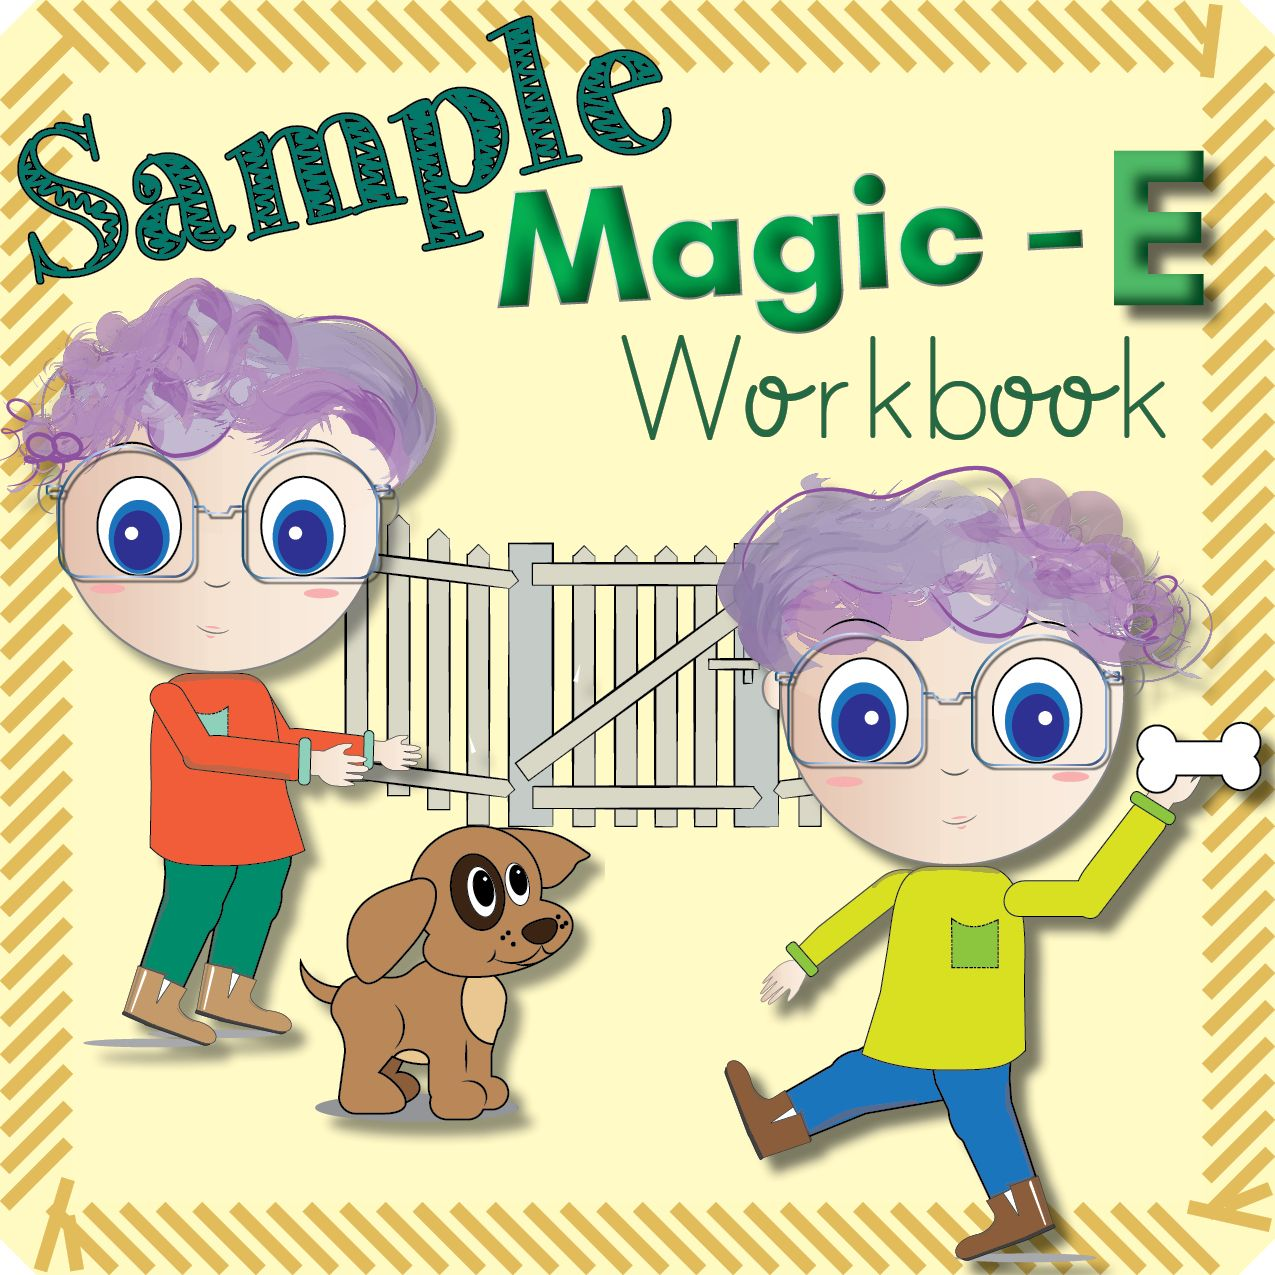 This Is A Free Sample Of The Magic